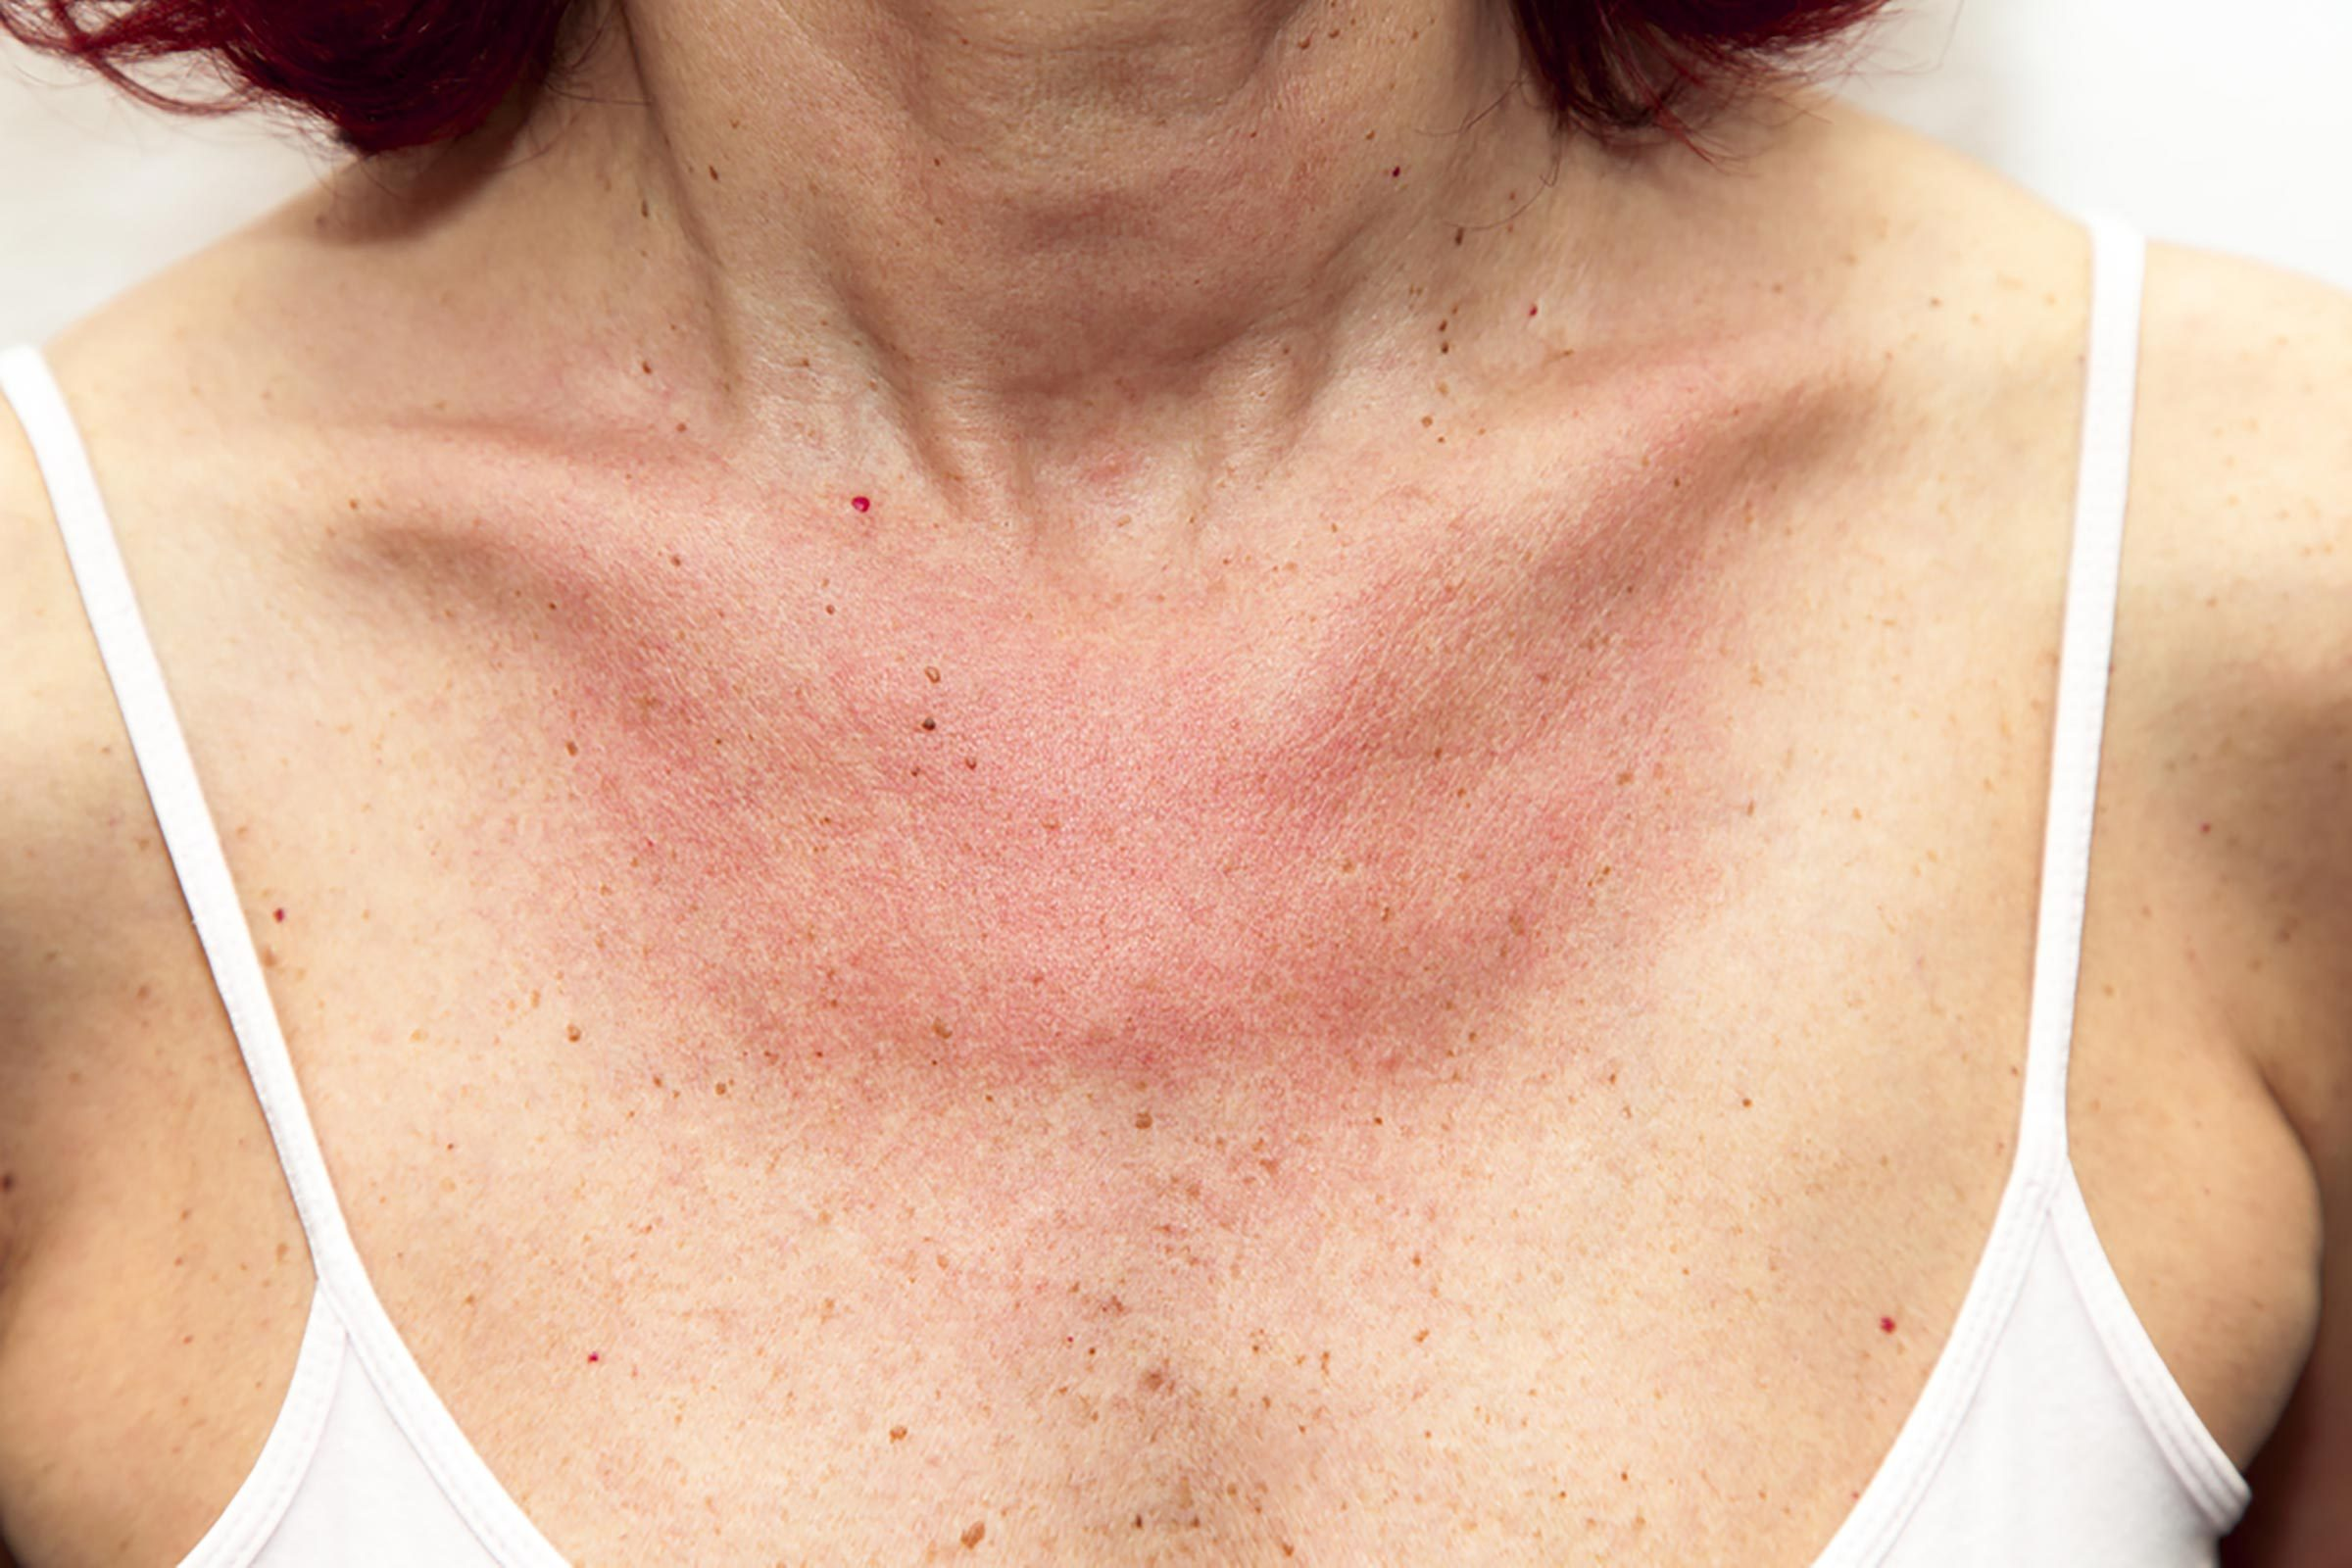 woman in tank top with sunburned chest, freckles